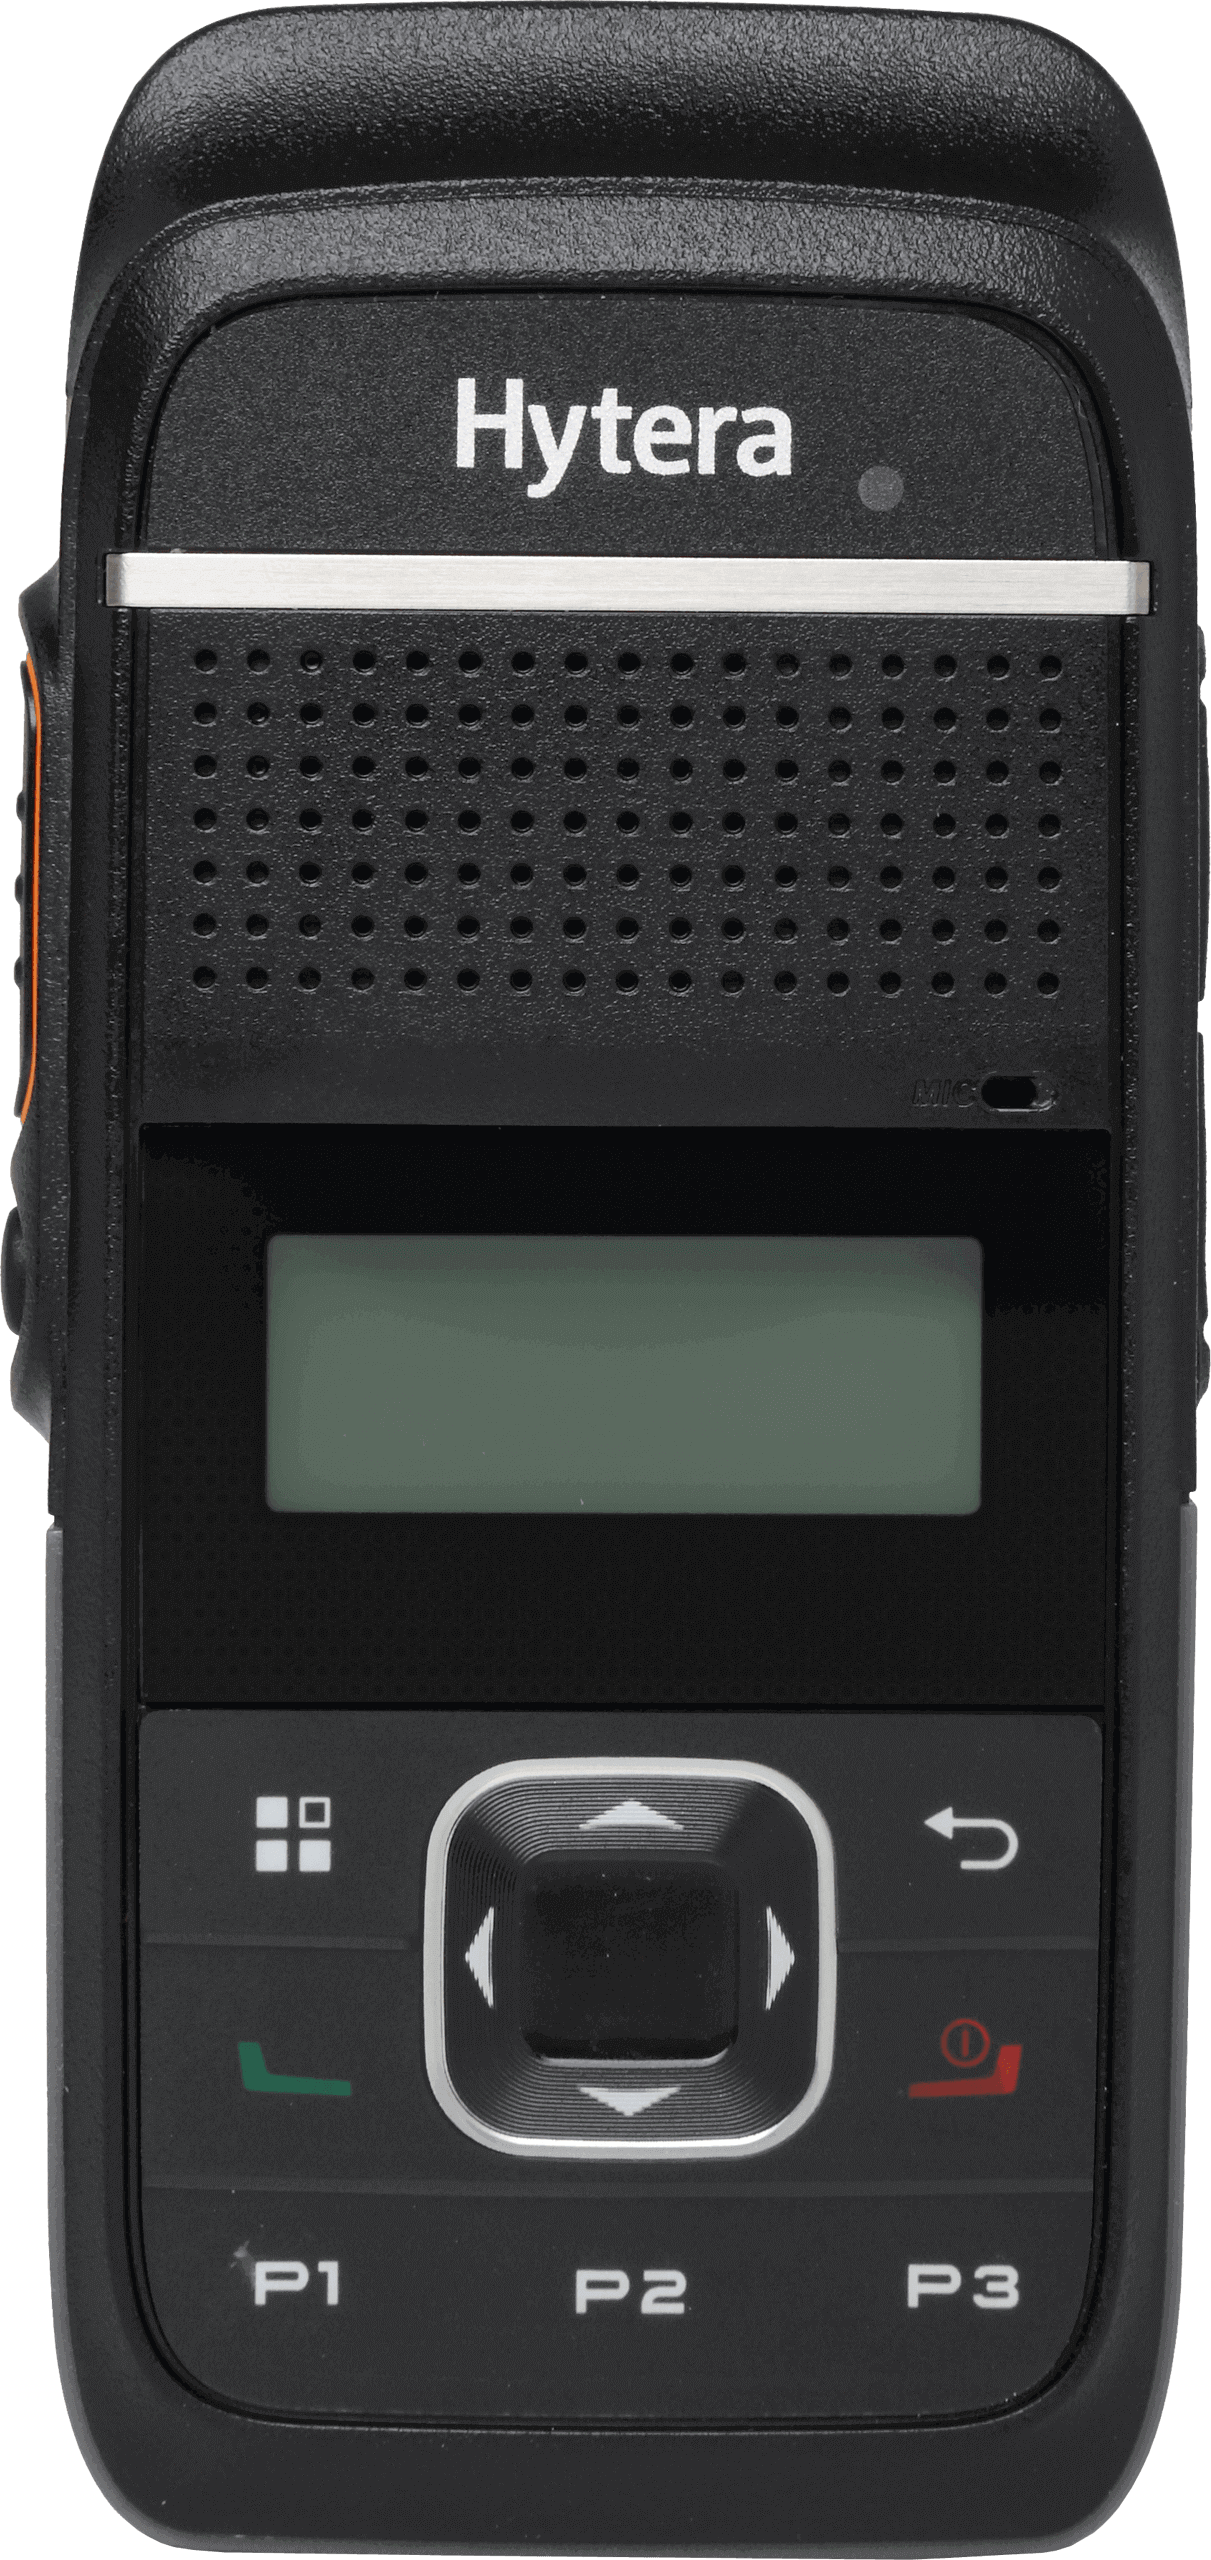 Hytera PD355 featured image